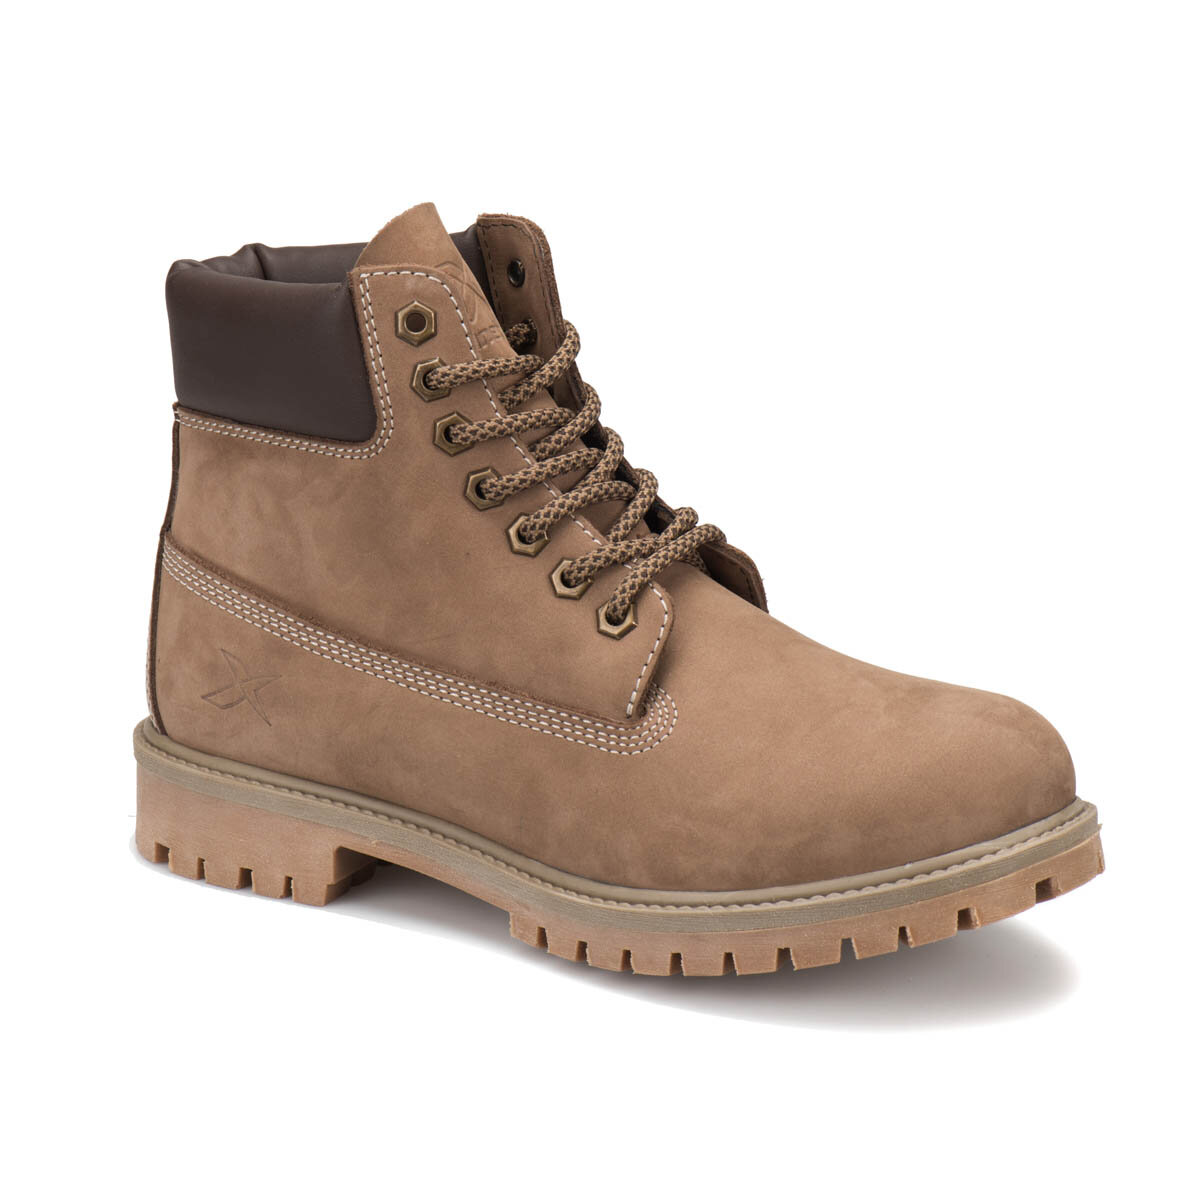 FLO RUFINO Sand Color Men Boots KINETIX